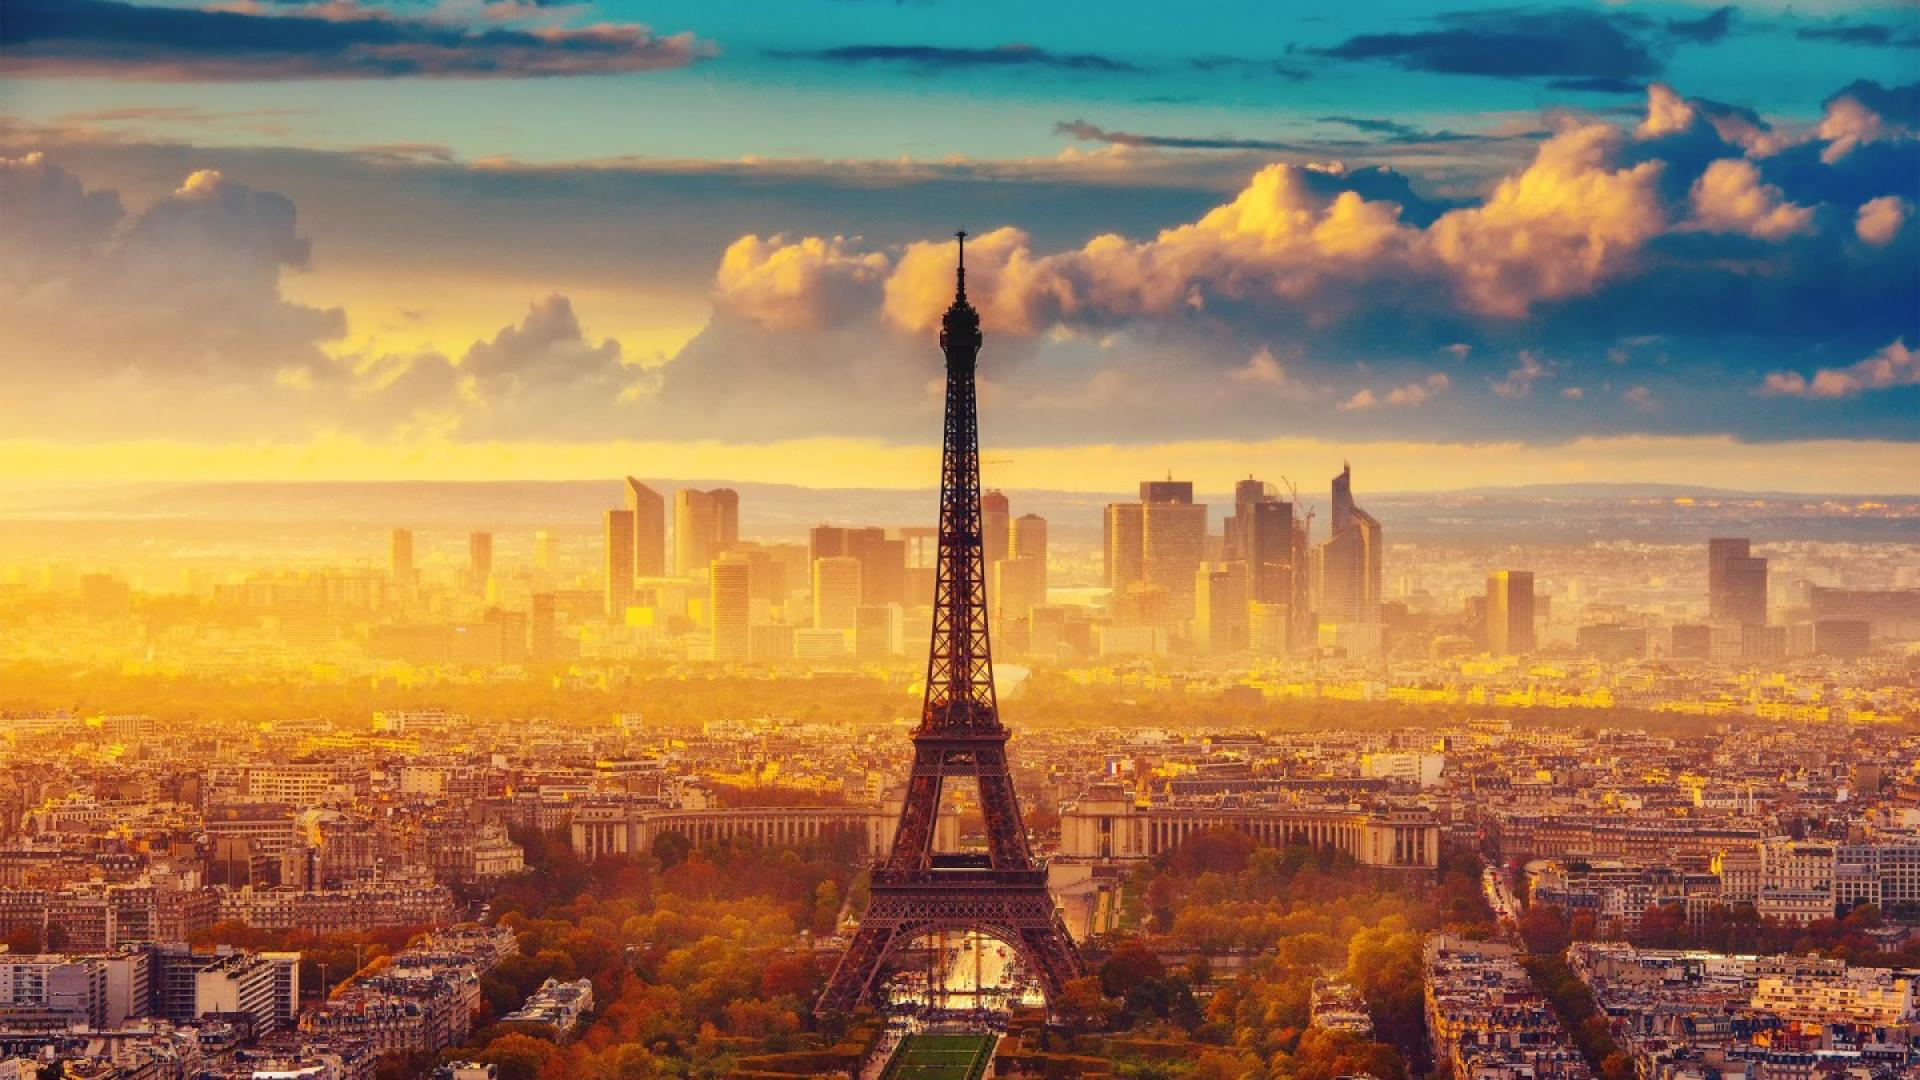 Eiffel Tower Wallpapers Best Wallpapers